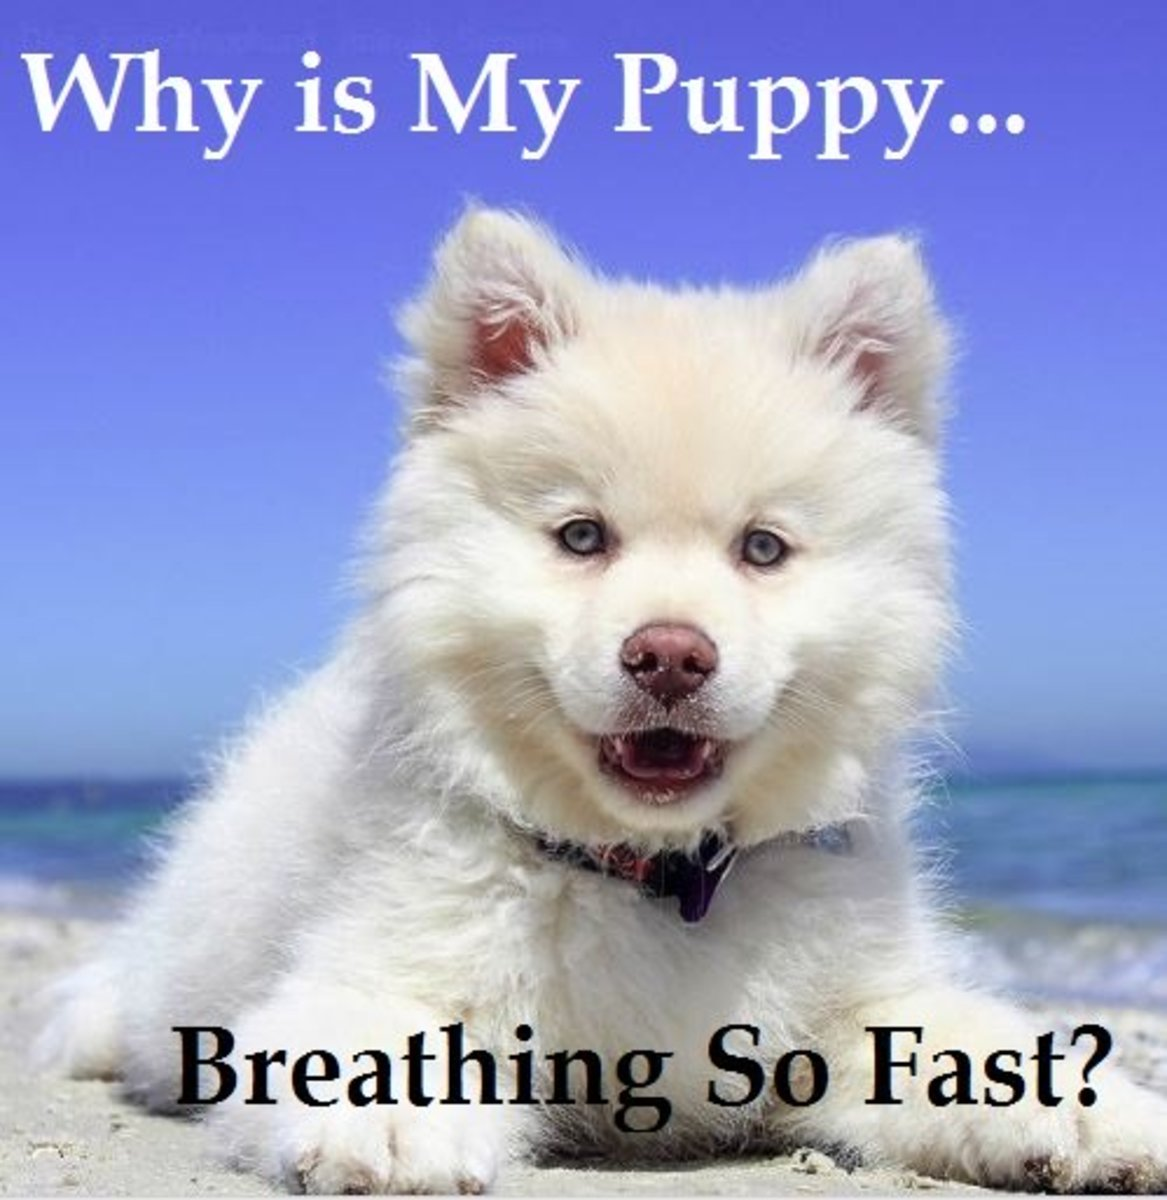 Puppies may breathe a bit faster than adult dogs.